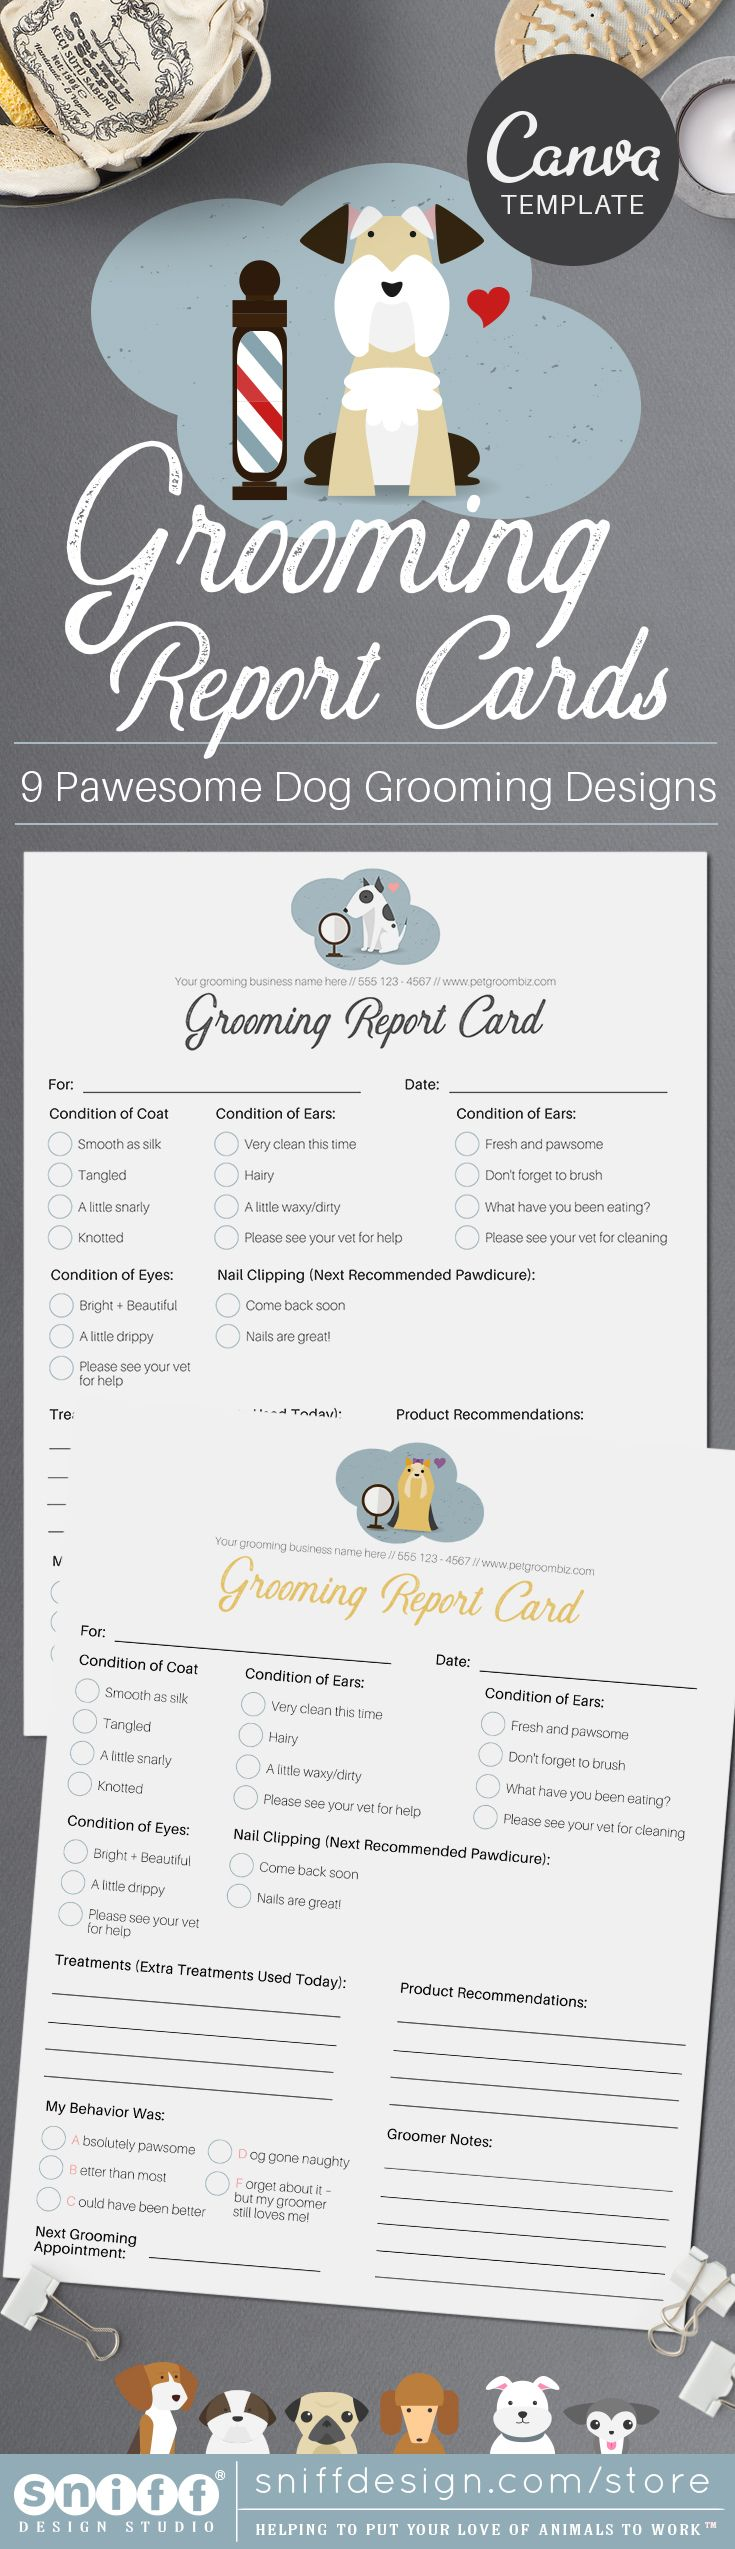 Pet Grooming Report Card Pack Canva Template Pet Grooming Pet Grooming Business Pet Sitting Business